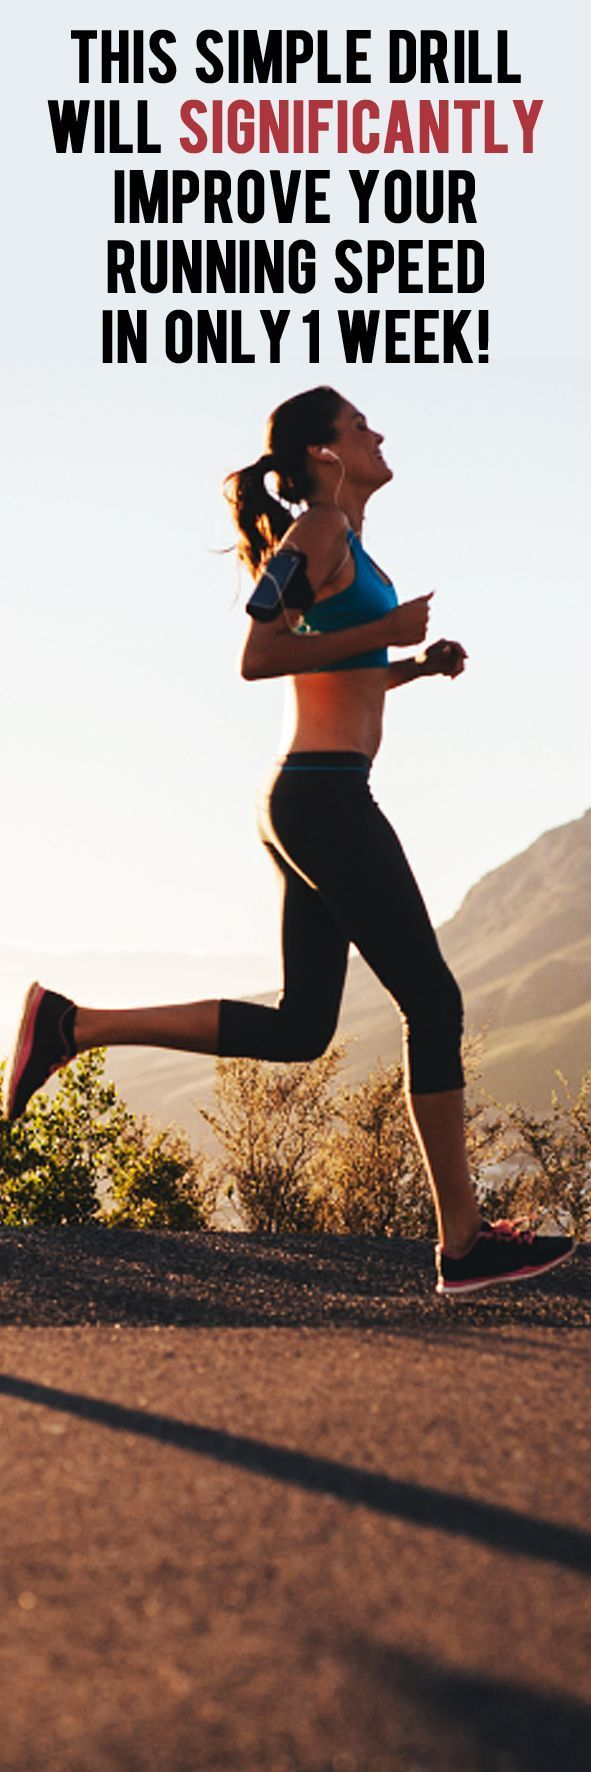 This simple drill will significantly improve your running speed in only one week! #runningtips #runningadvice #runfaster